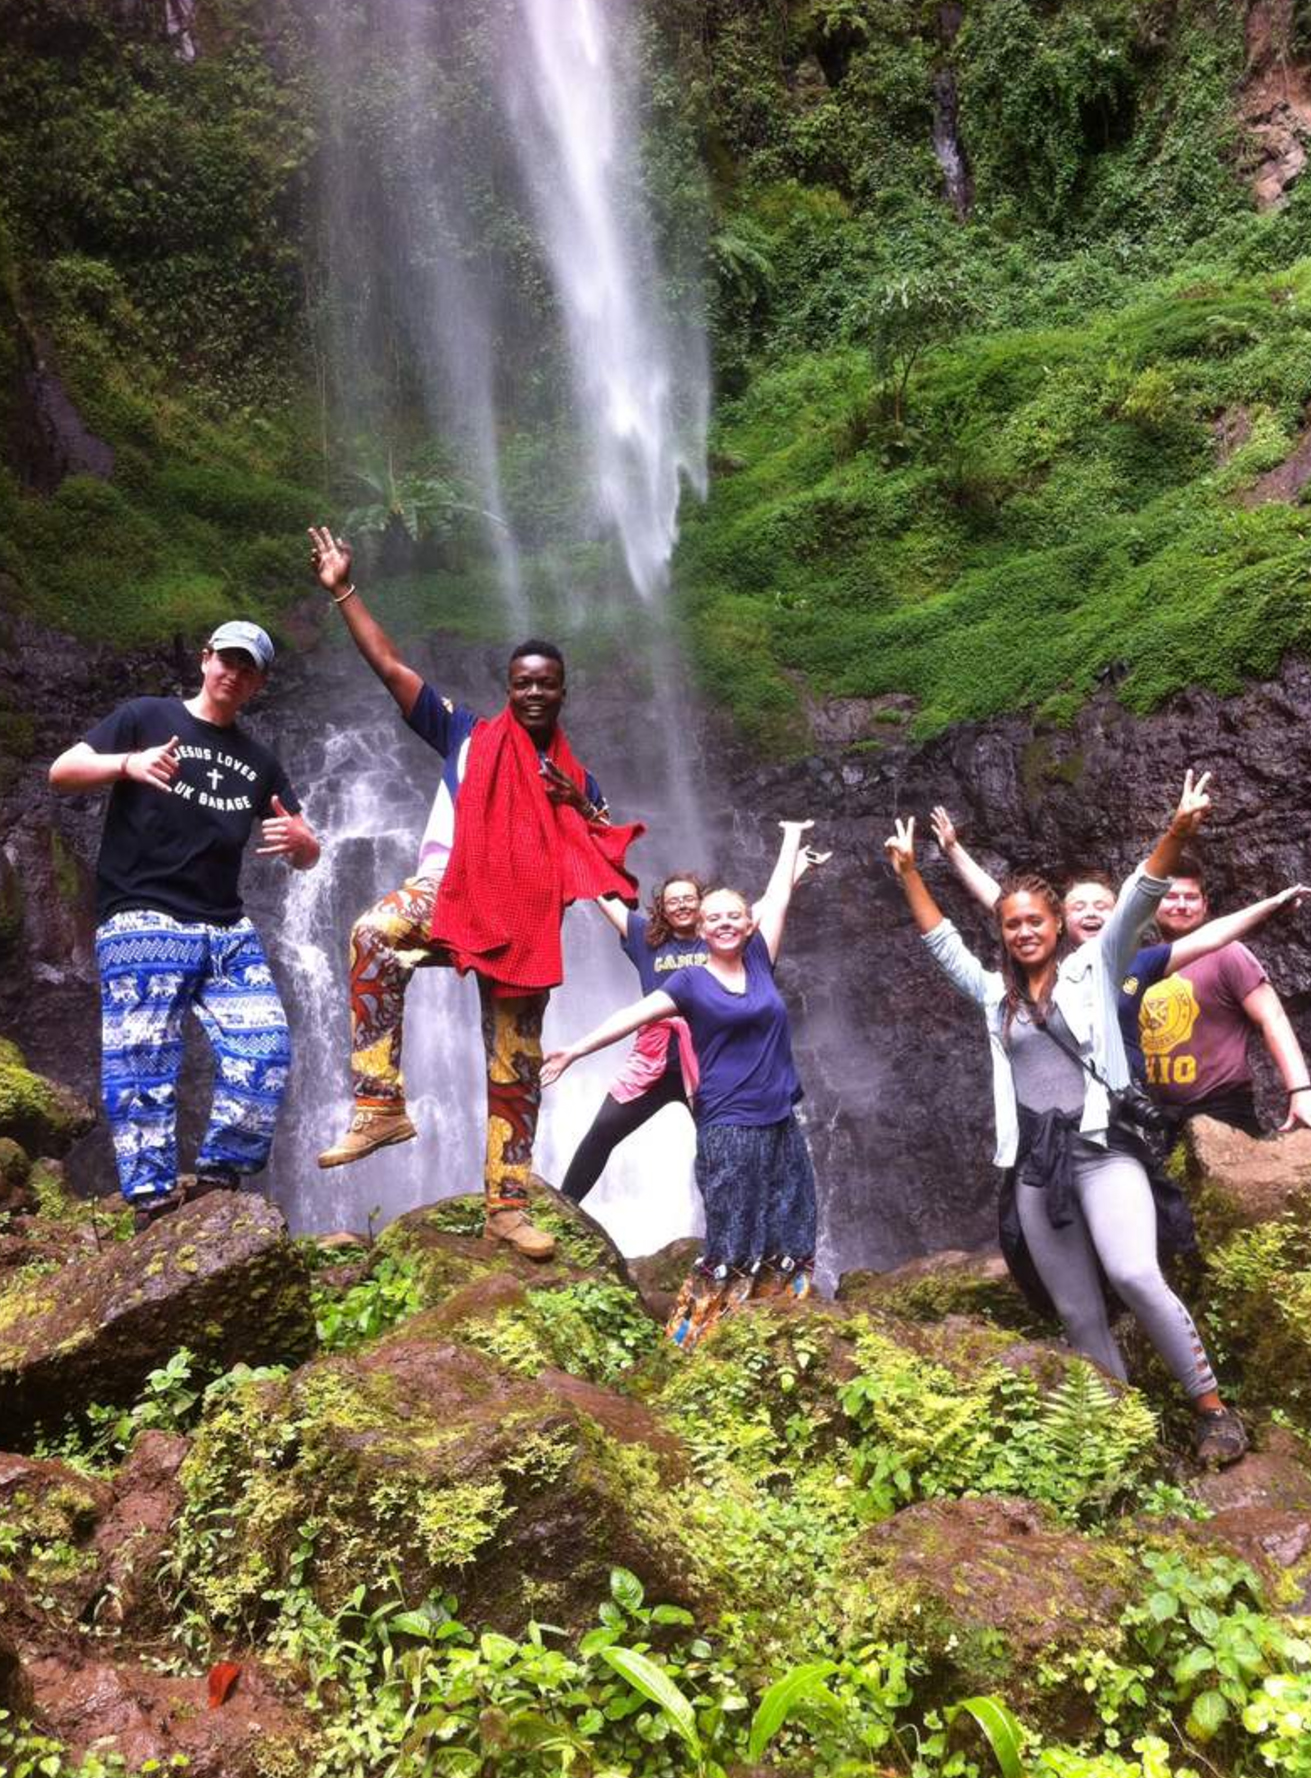 school_expedition_tanzania_impact_waterfall_celebration